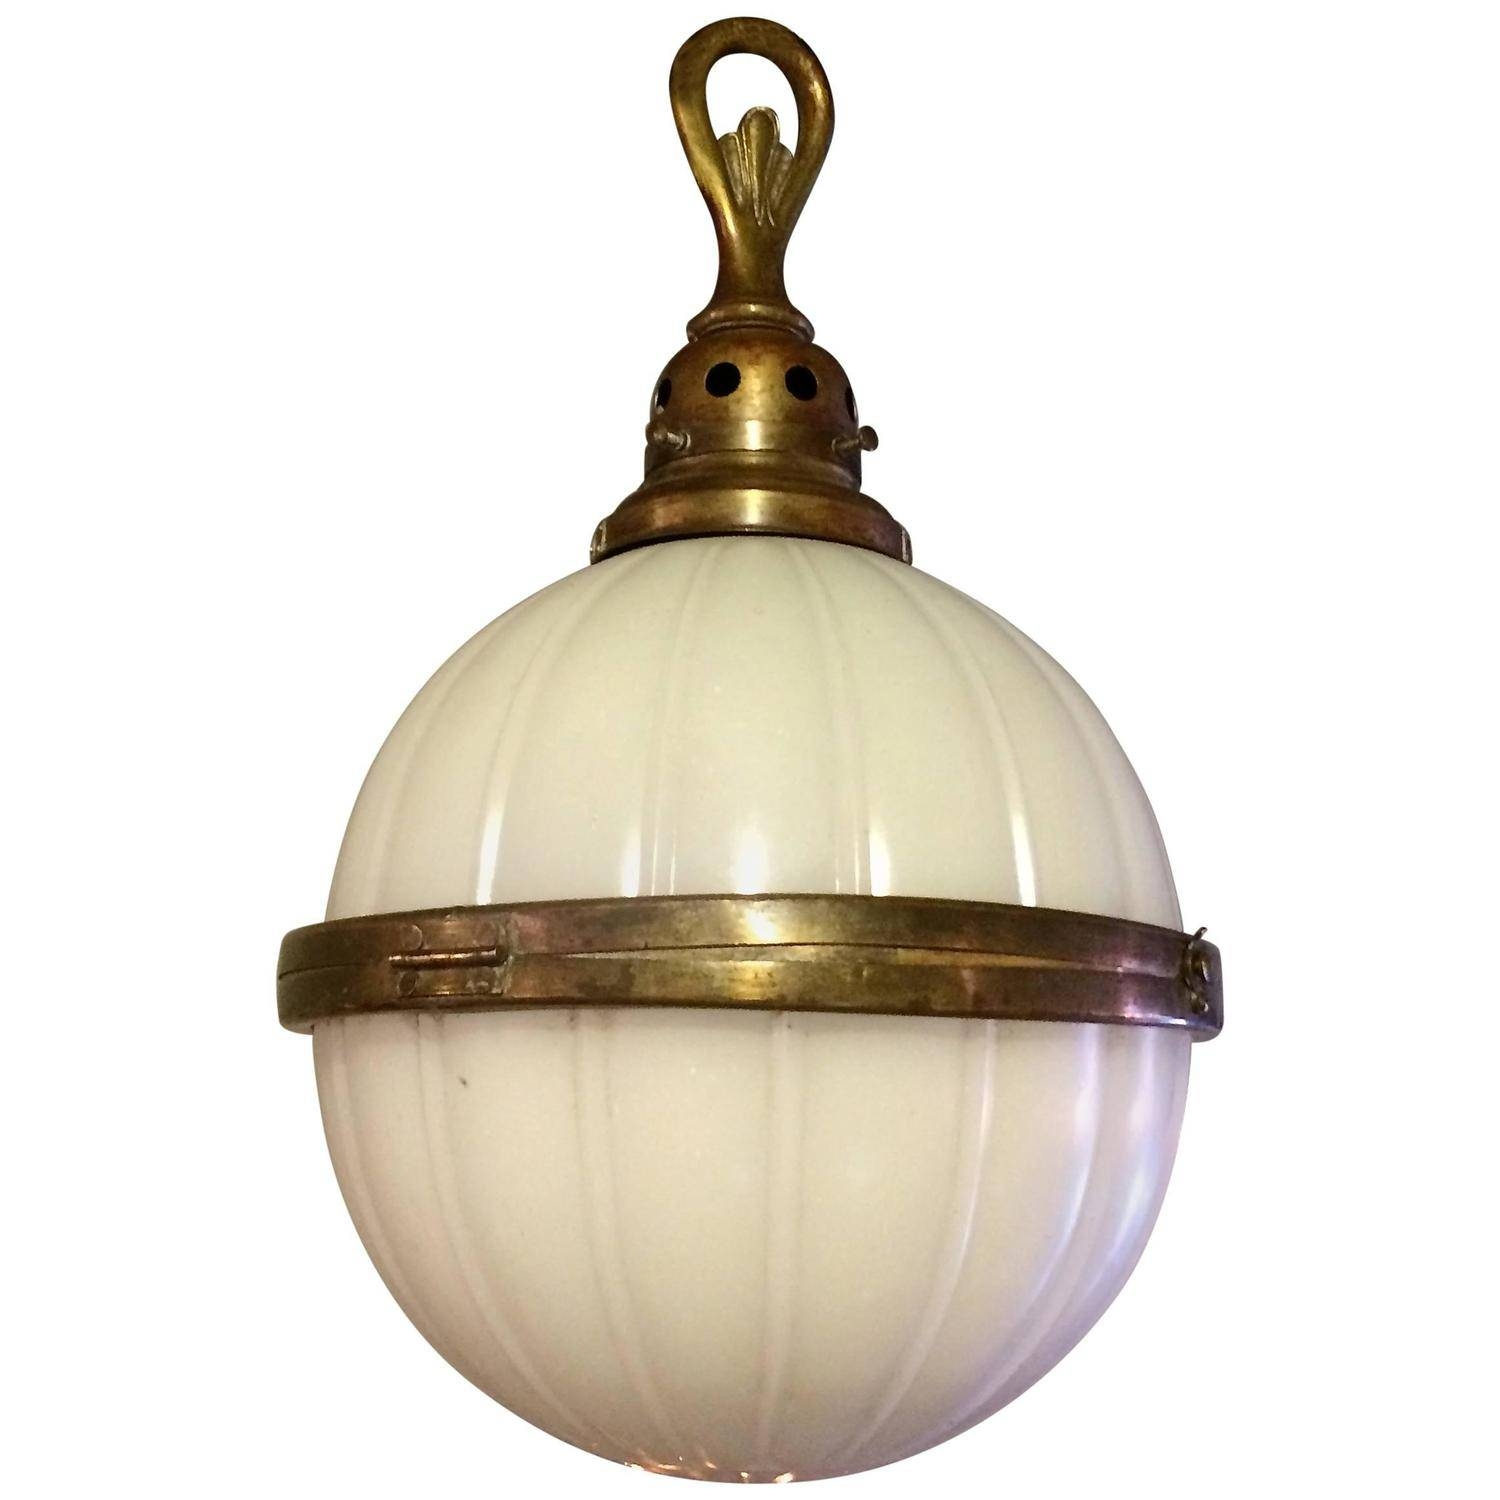 Industrial Ribbed Milk Glass And Brass Library Globe Pendant Light within Milk Glass Pendant Lights Fixtures (Image 6 of 15)